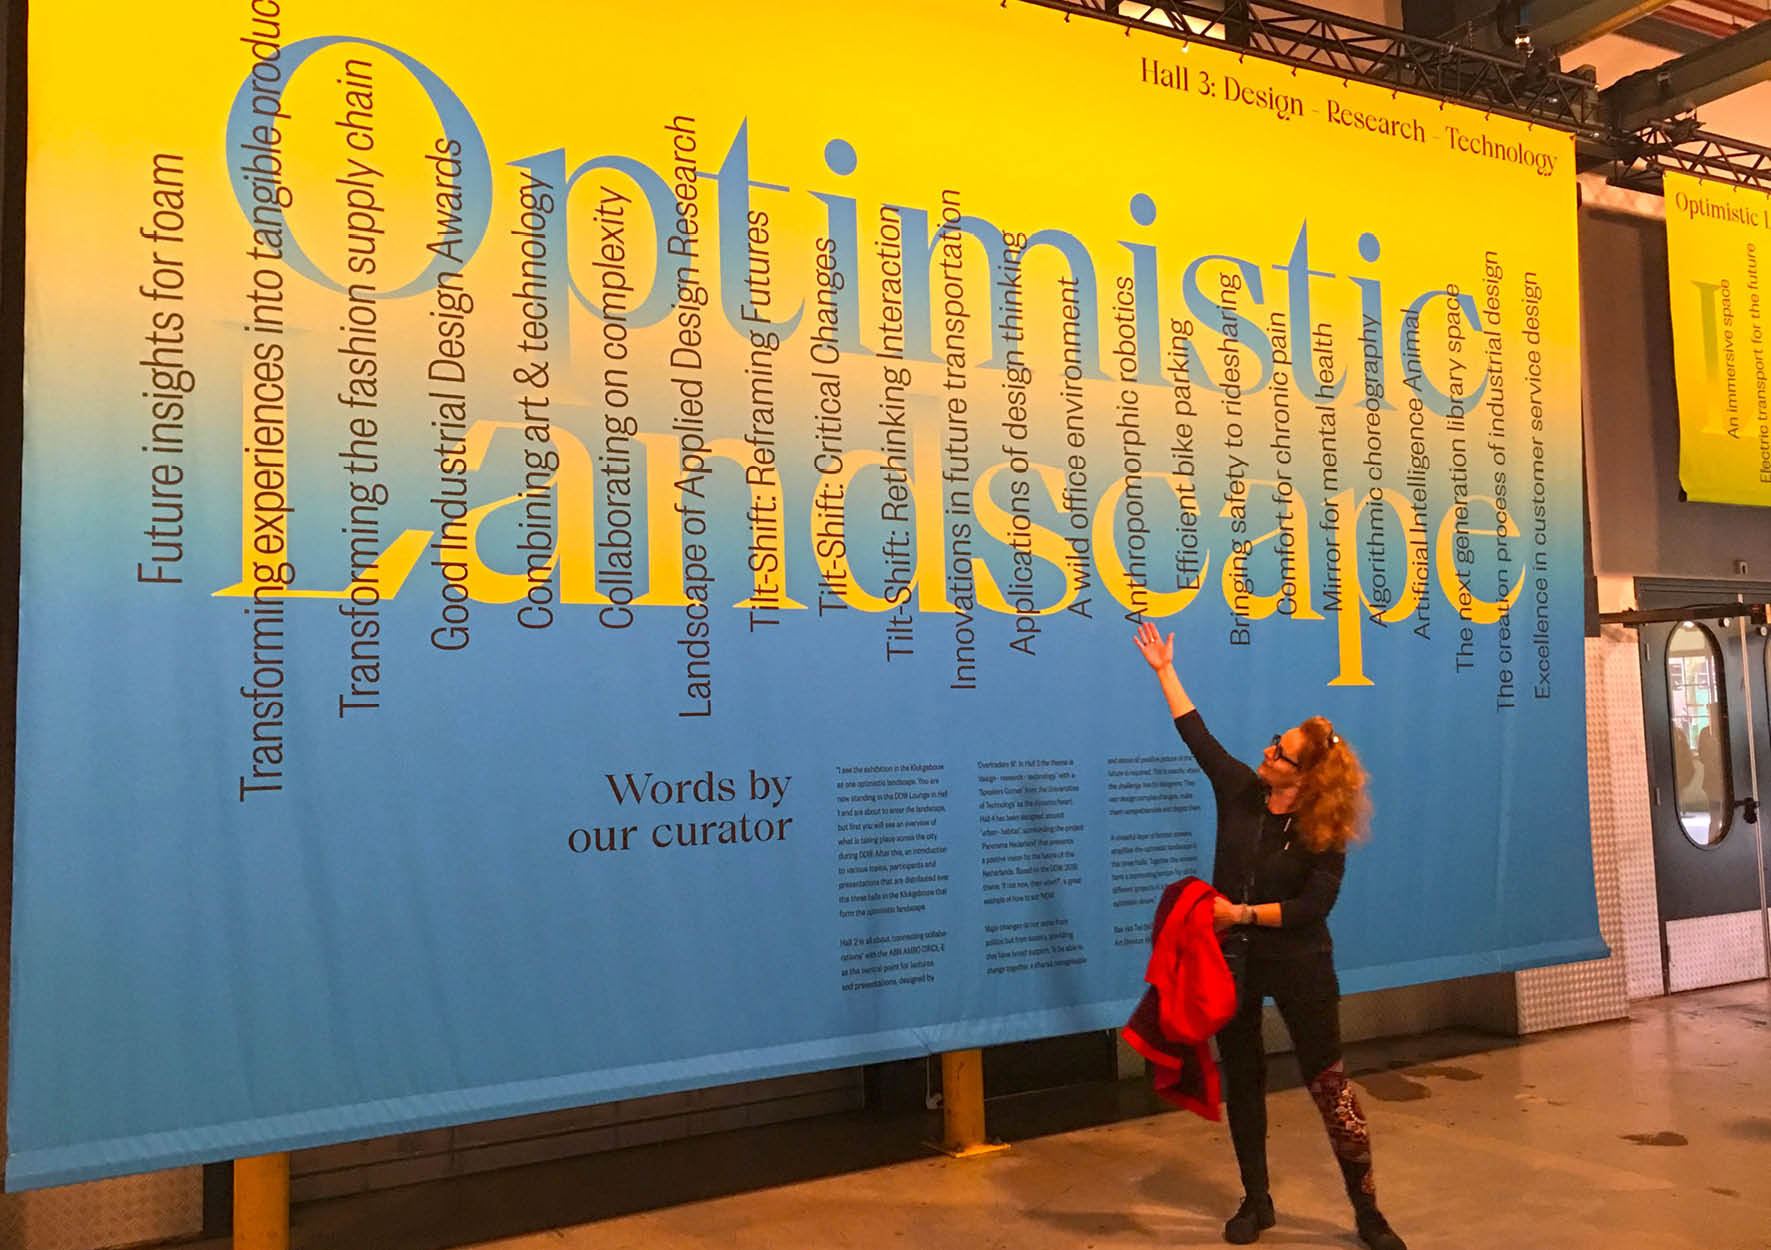 Migdala Blog, Optimistic Landscape exhibition, Dutch Design week 2019